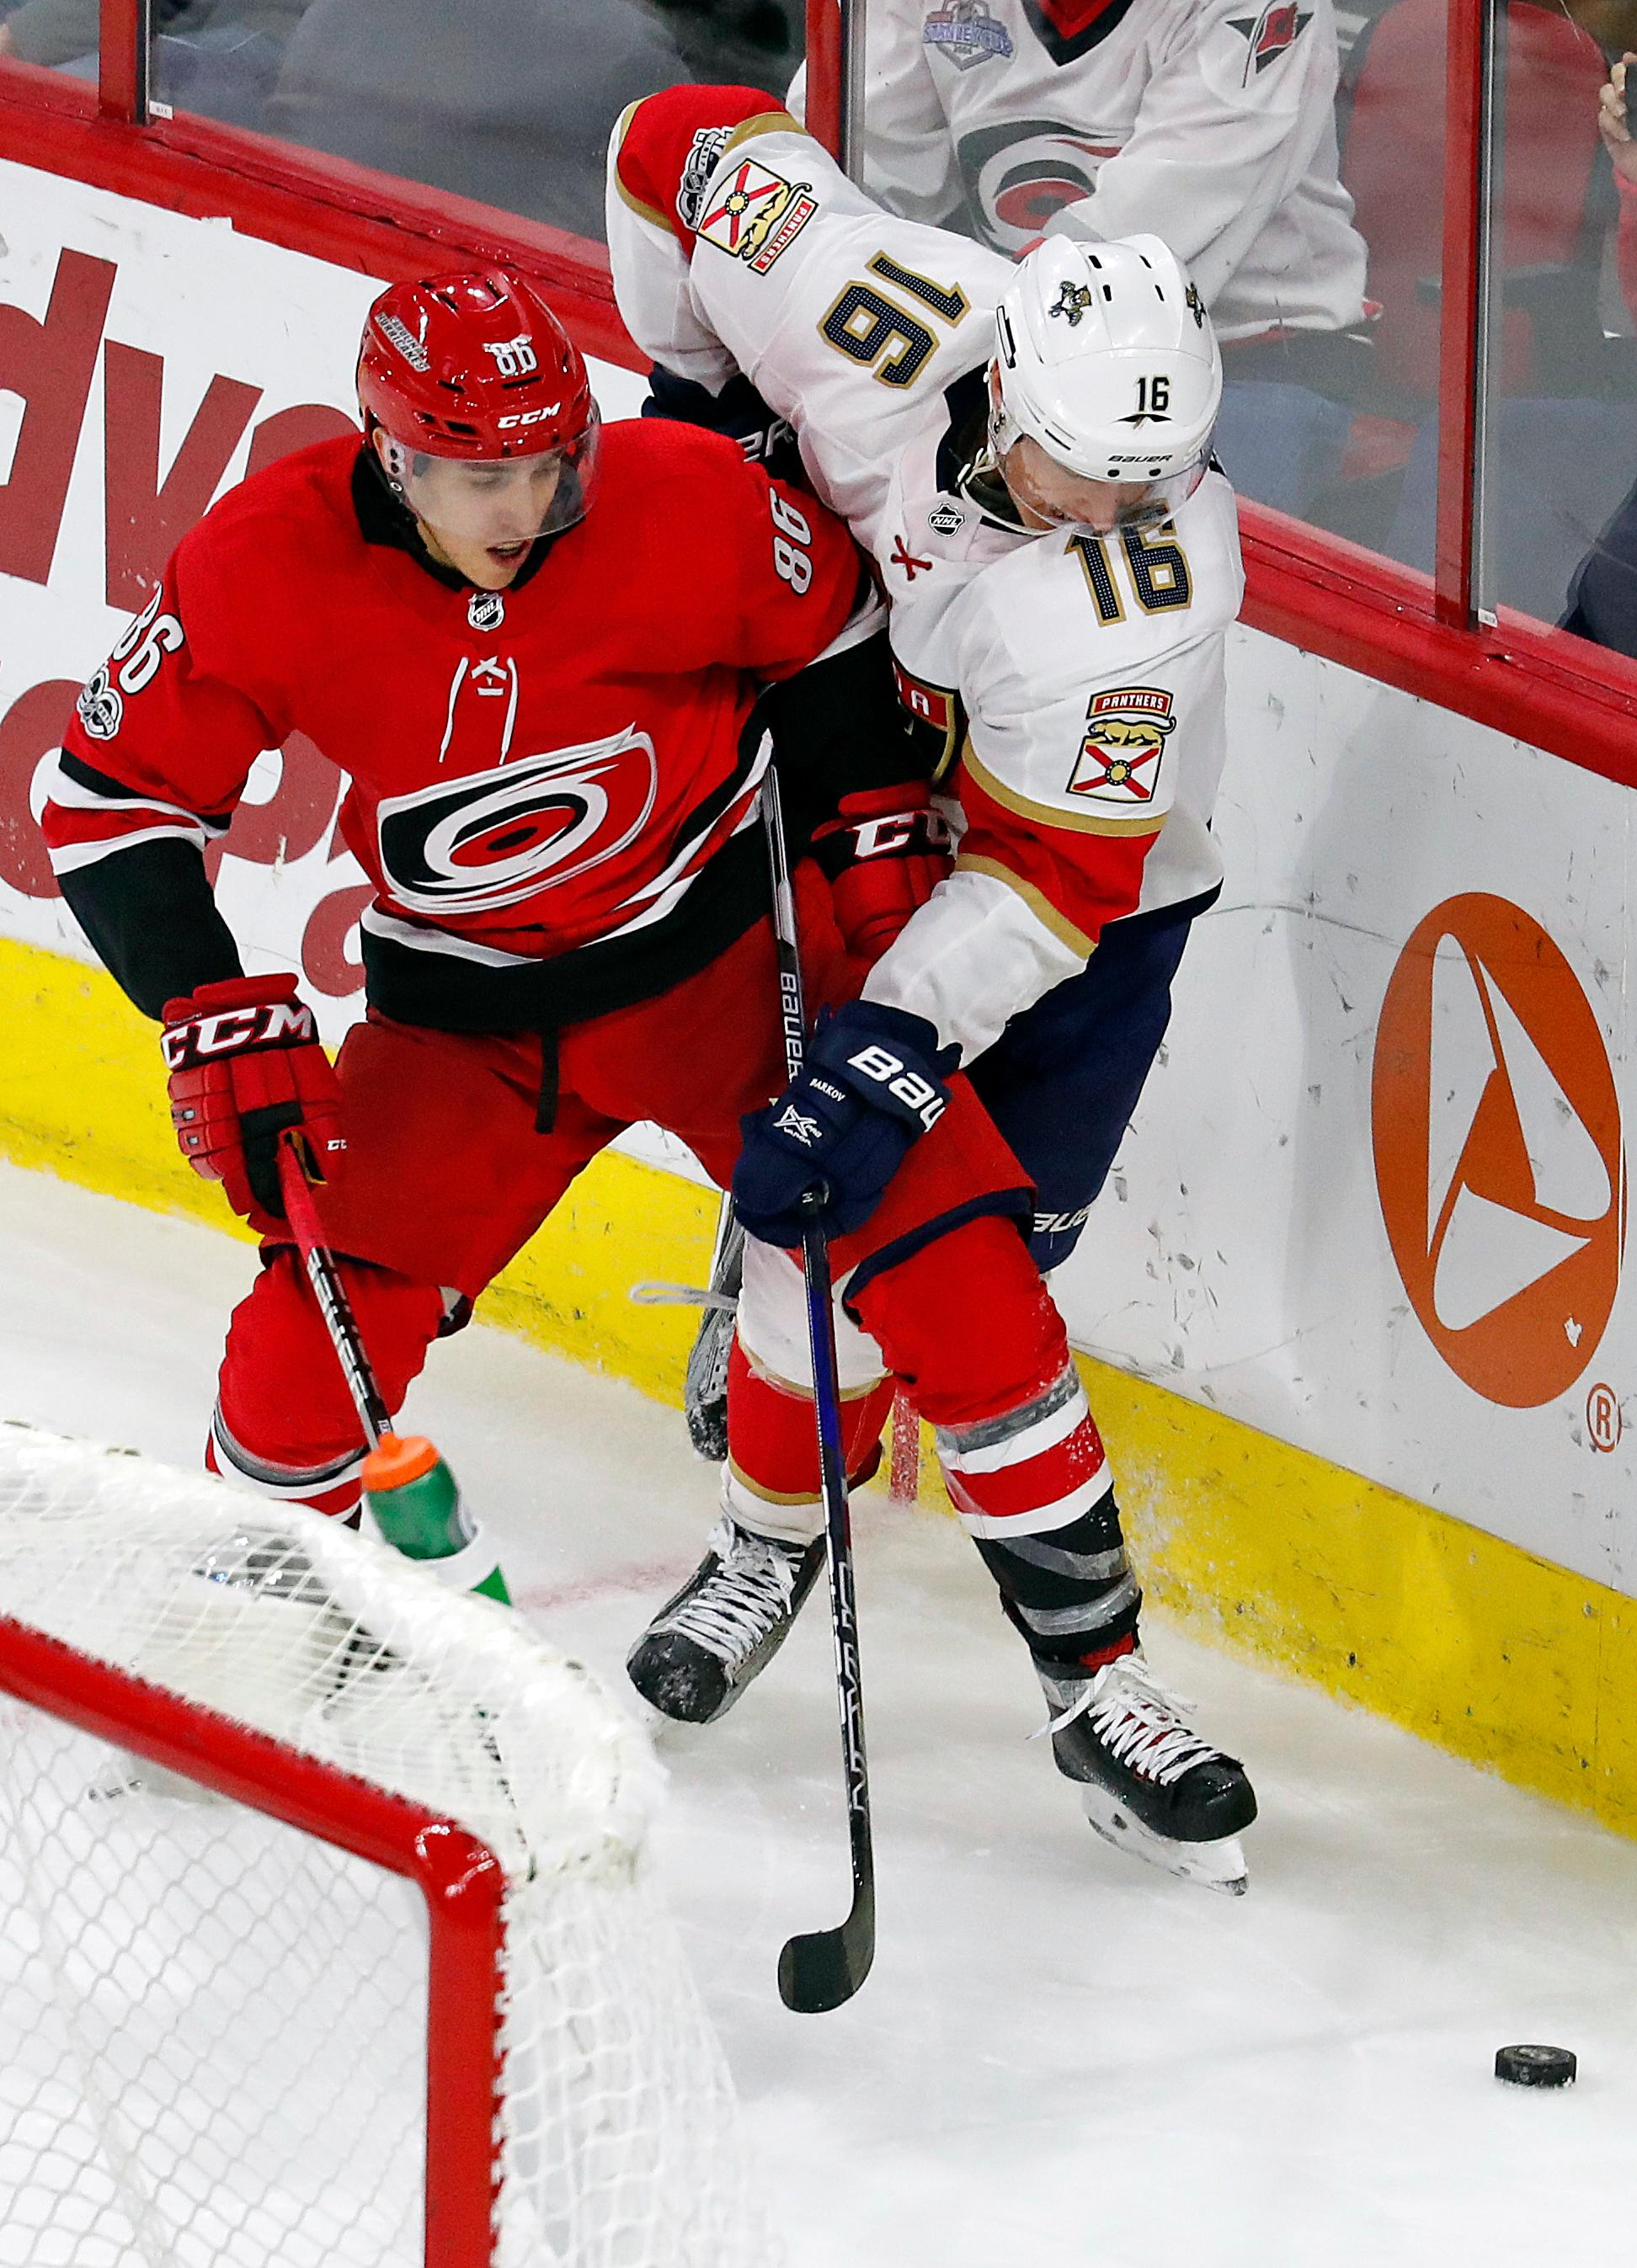 Carolina Hurricanes' Teuvo Teravainen (86) tangles with Florida Panthers' Aleksander Barkov (16) during the third period of an NHL hockey game, Tuesday, Nov. 7, 2017, in Raleigh, N.C. (AP Photo/Karl B DeBlaker)